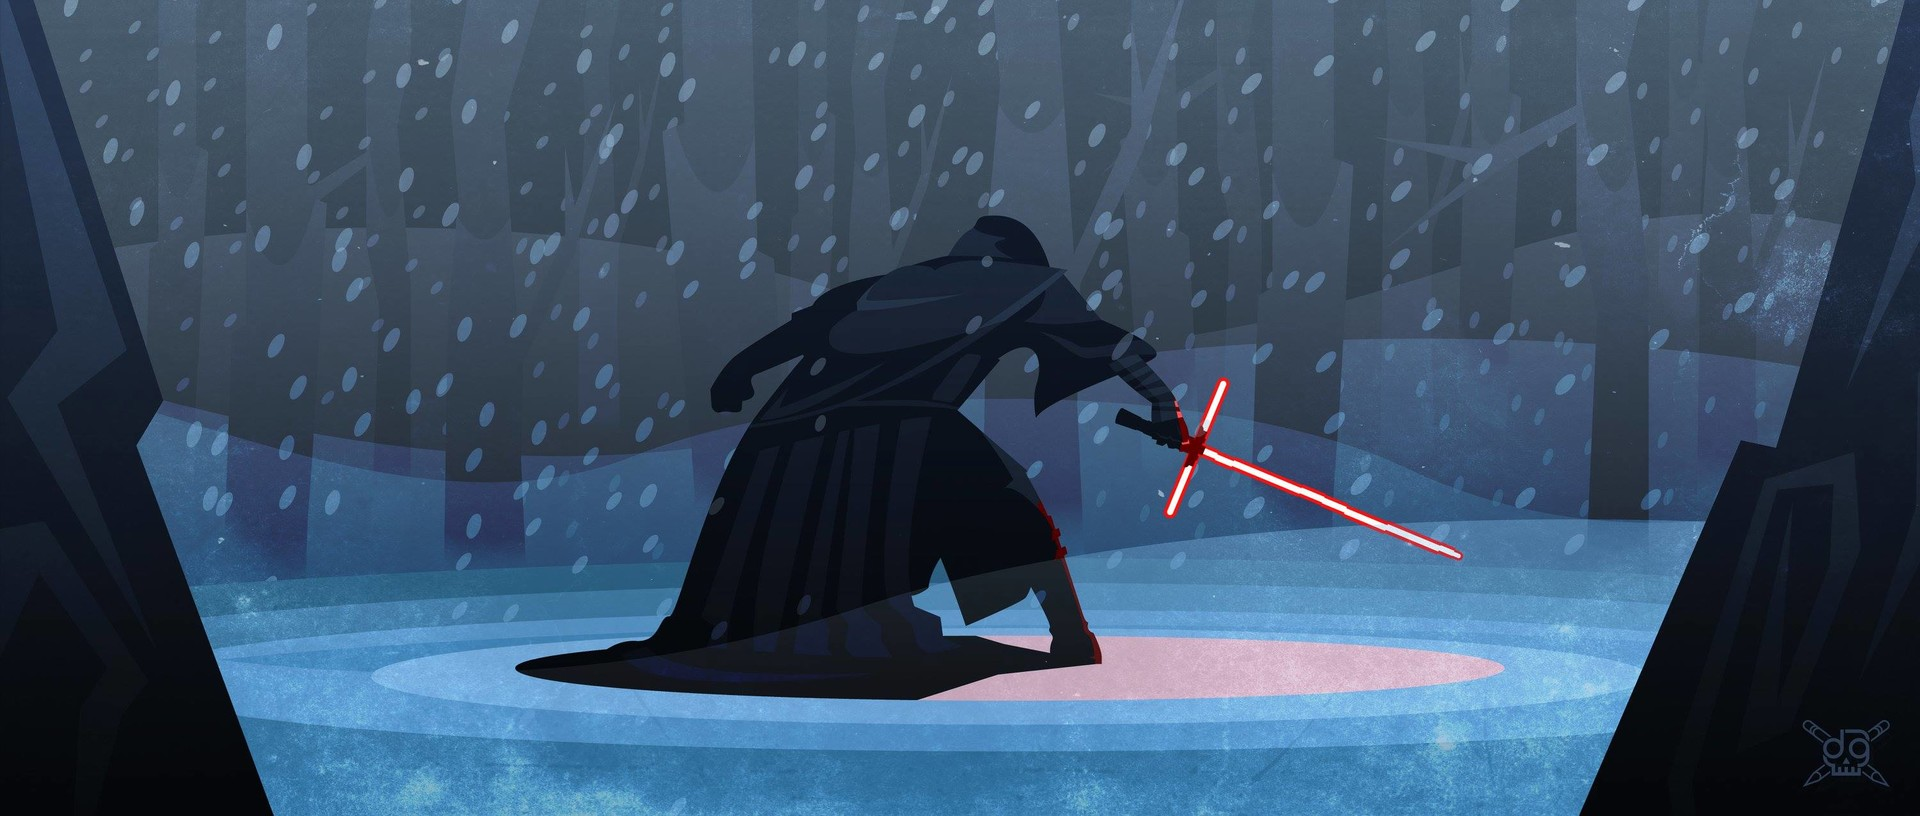 Kylo Ren in the forest vector illustration